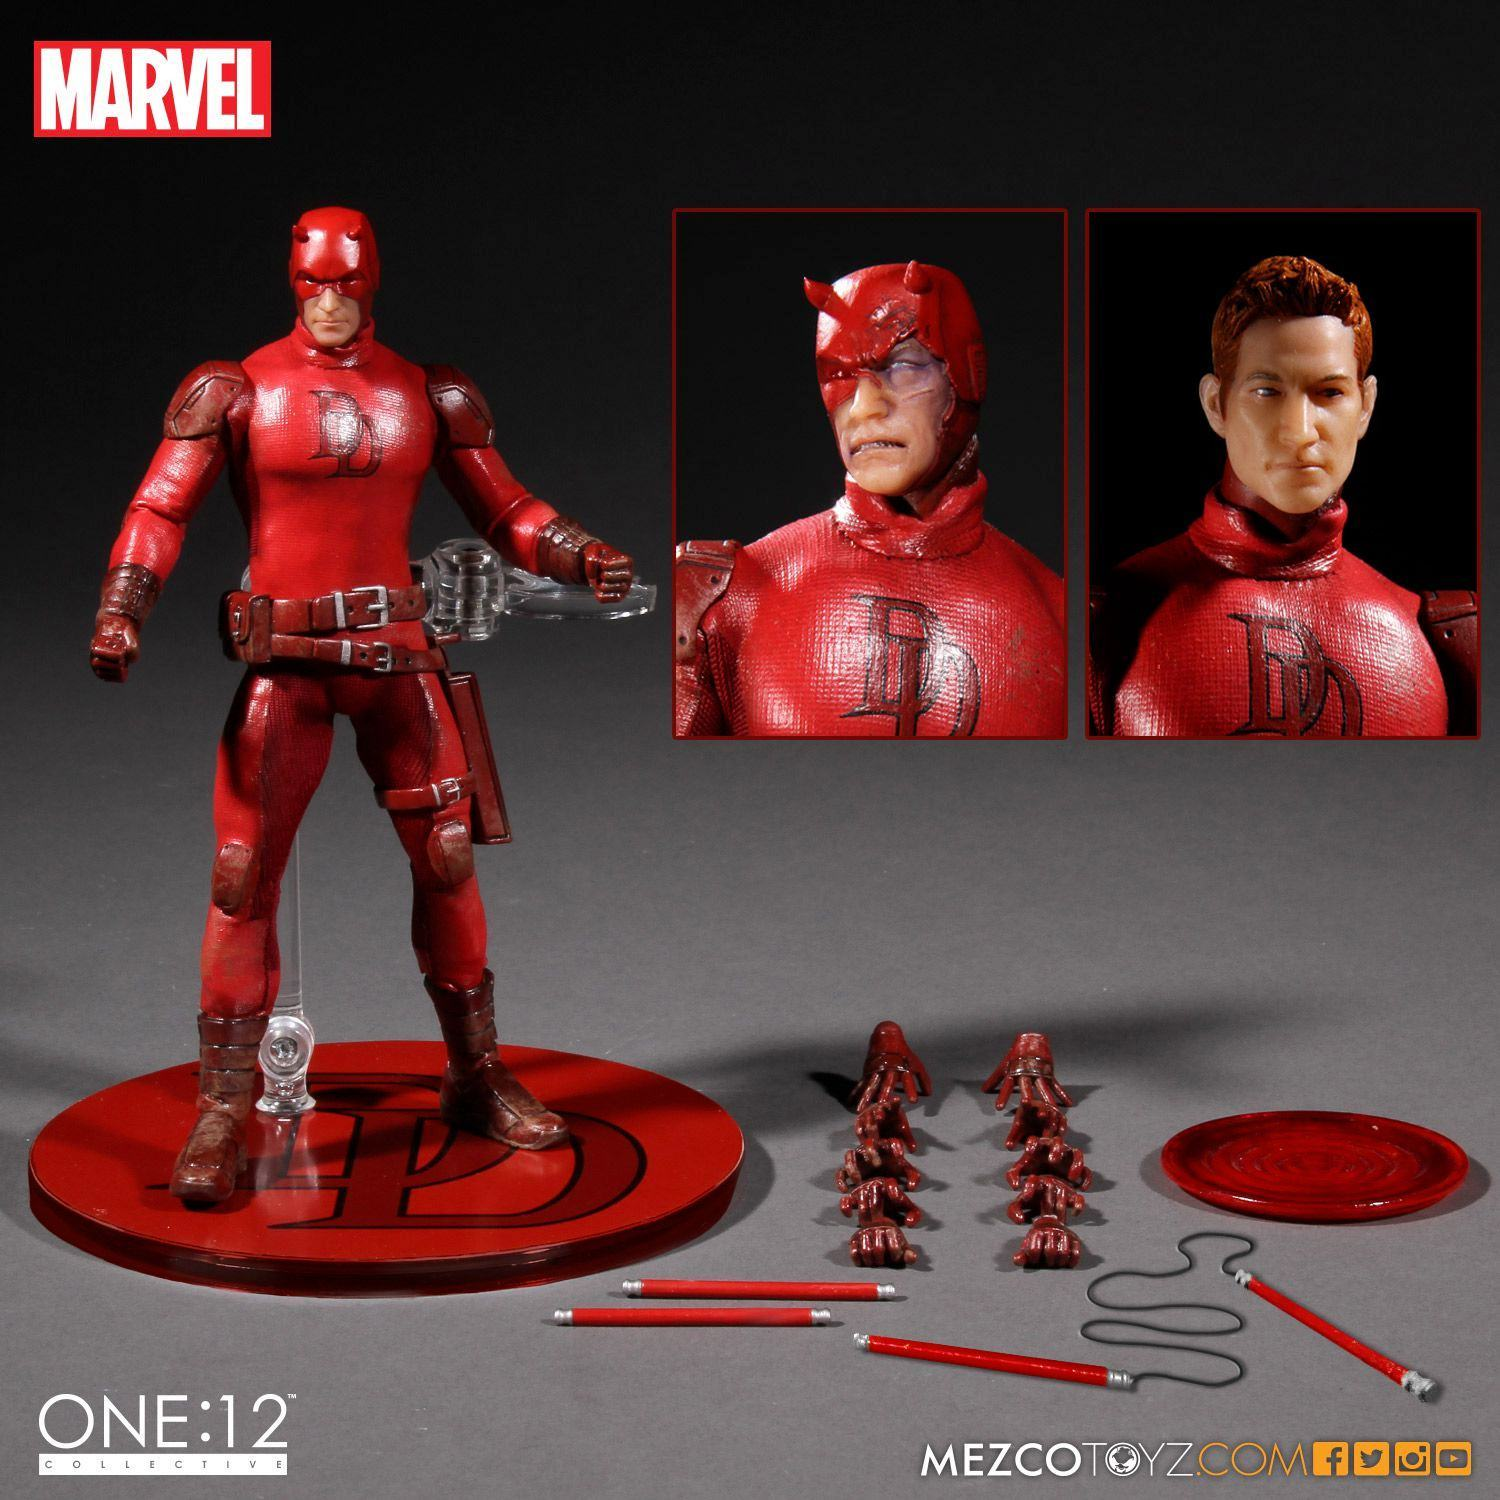 Demolidor-Daredevil-One12-Collective-Action-Figure-07